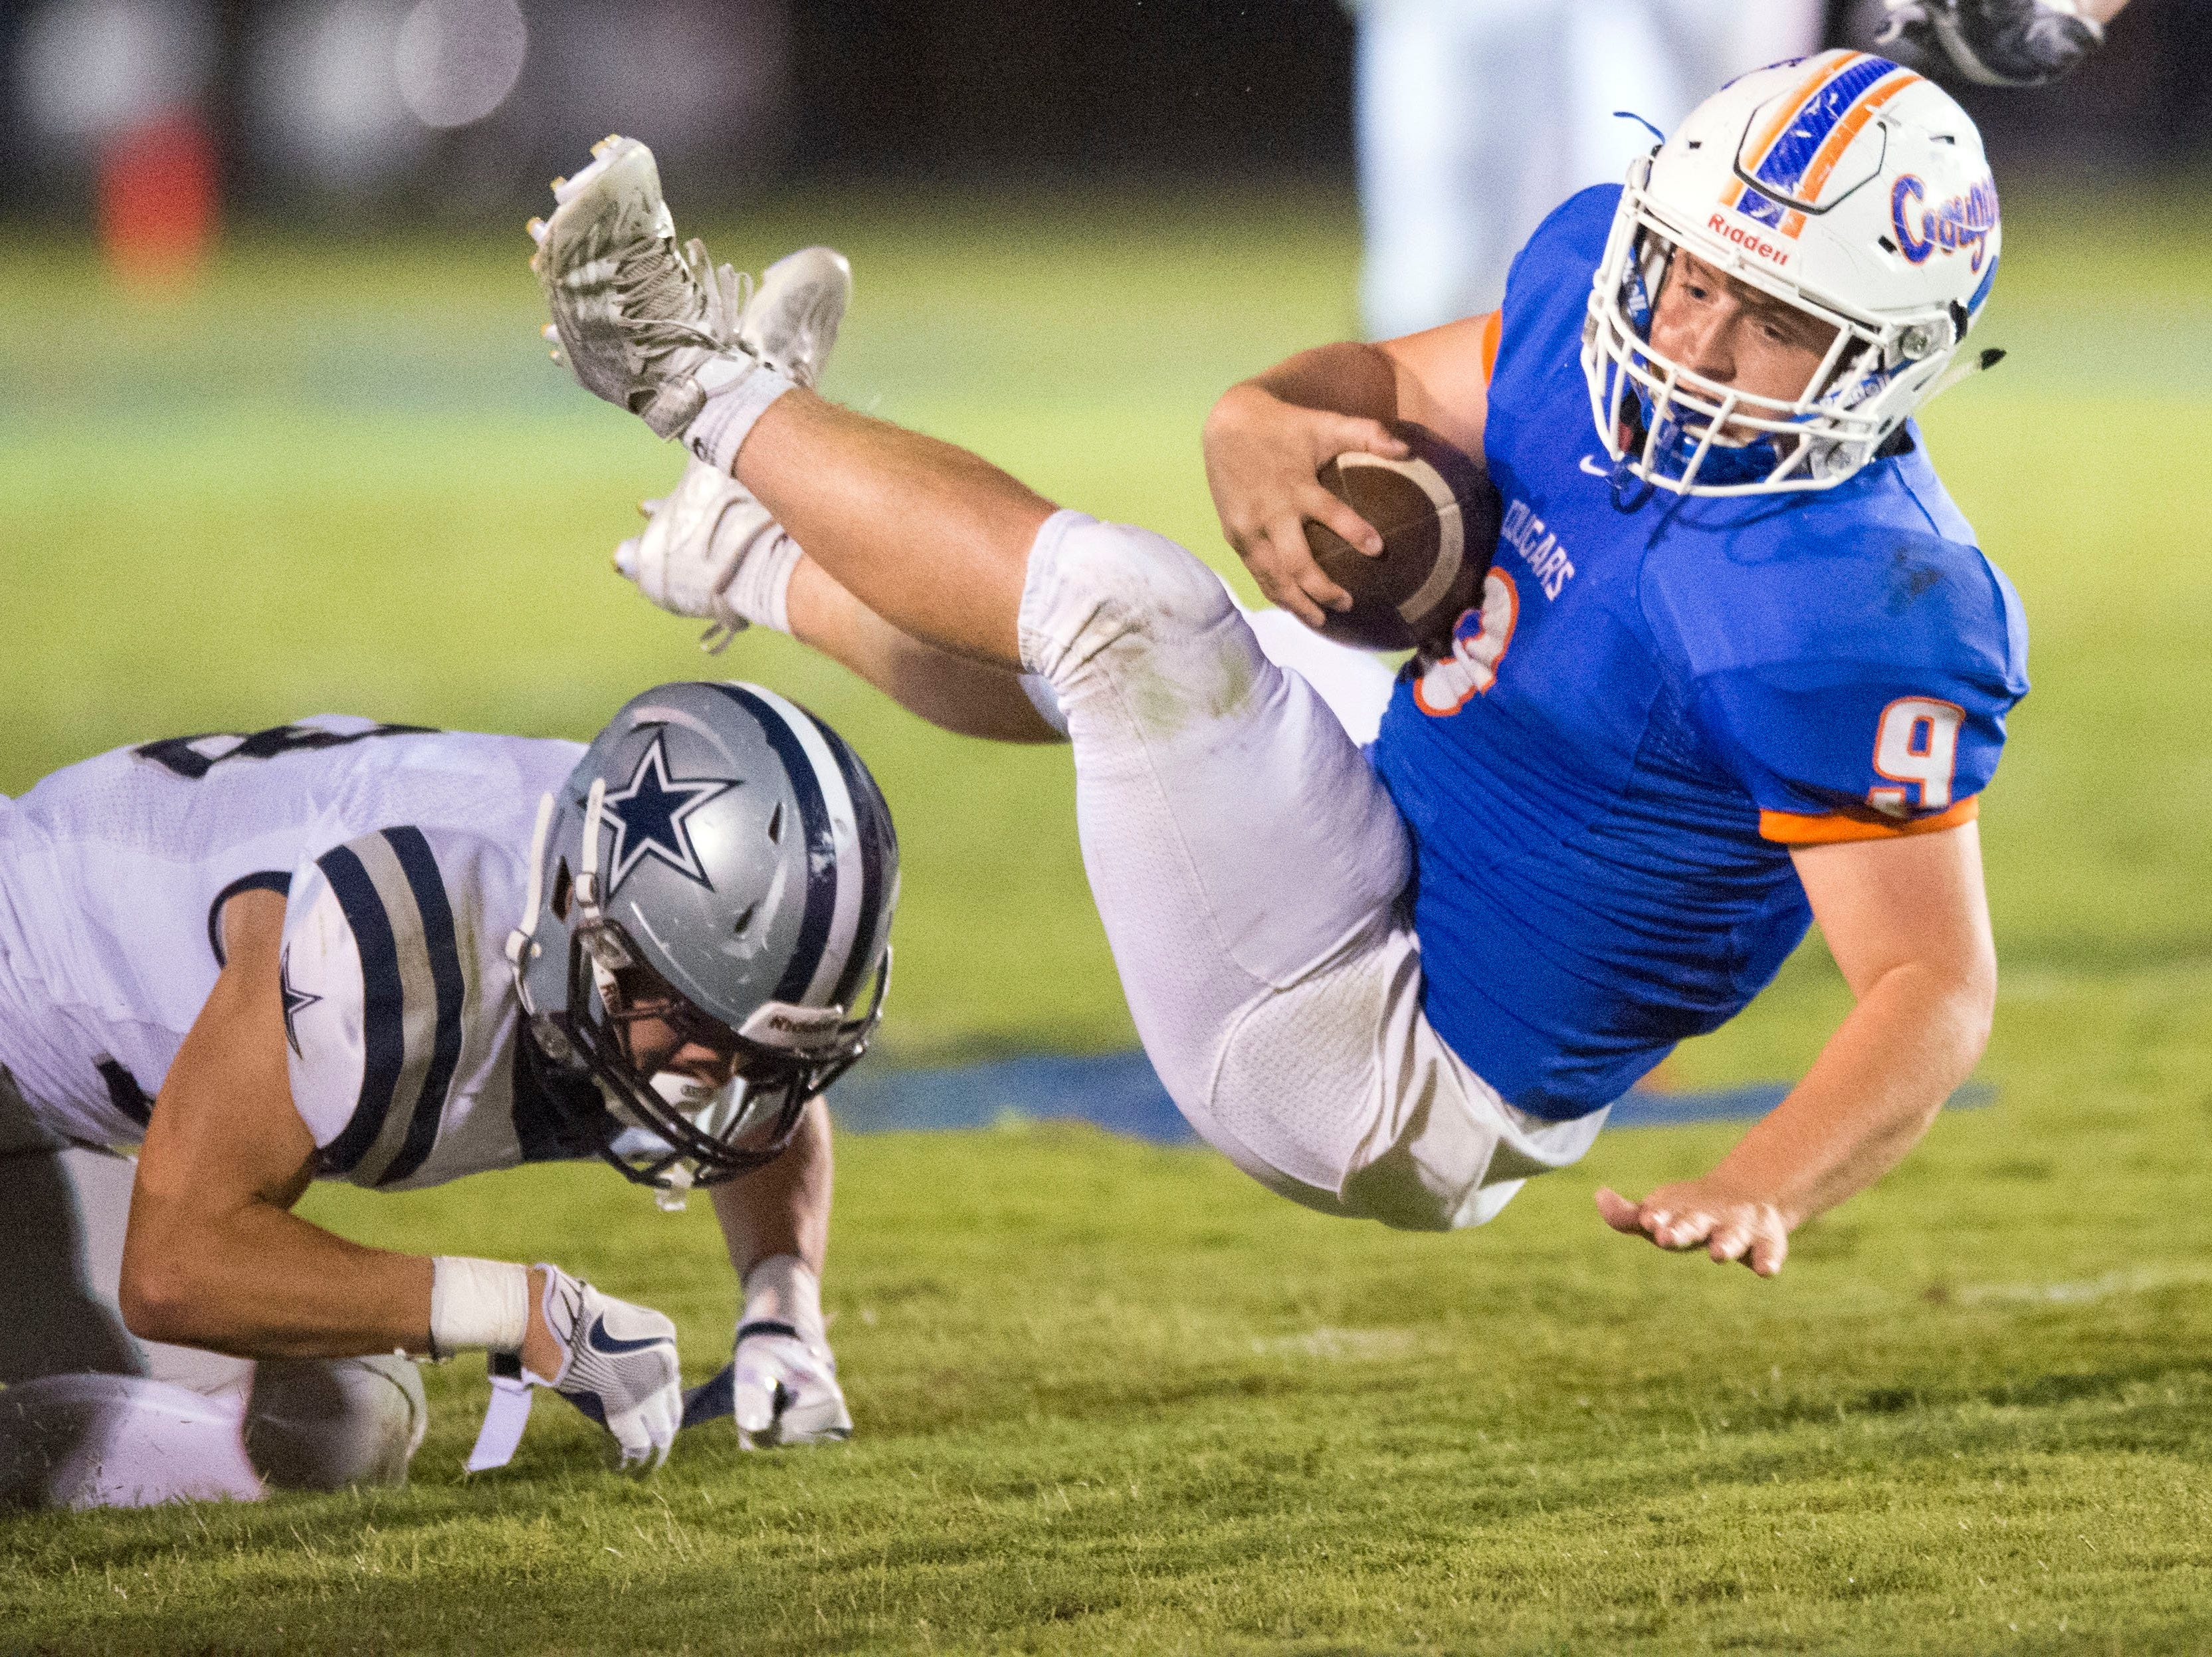 Campbell County's Patrick Strunk is tripped up by Farragut's Braden Collins, left, at Campbell County High School on Thursday, September 29, 2016.